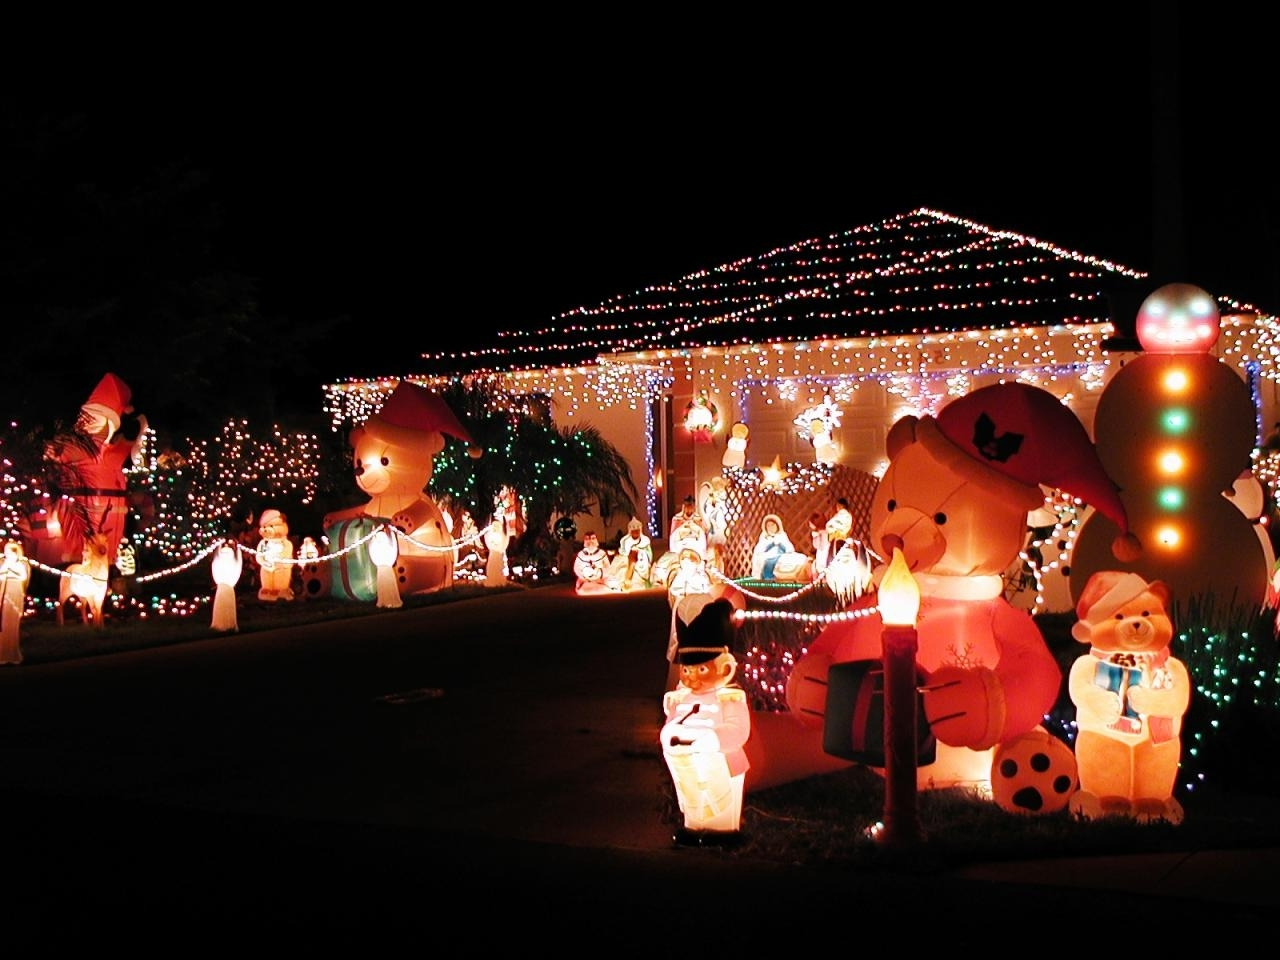 Hanging Outdoor Christmas Lights In Roof Throughout Popular How To Hang Christmas Lights (View 6 of 20)